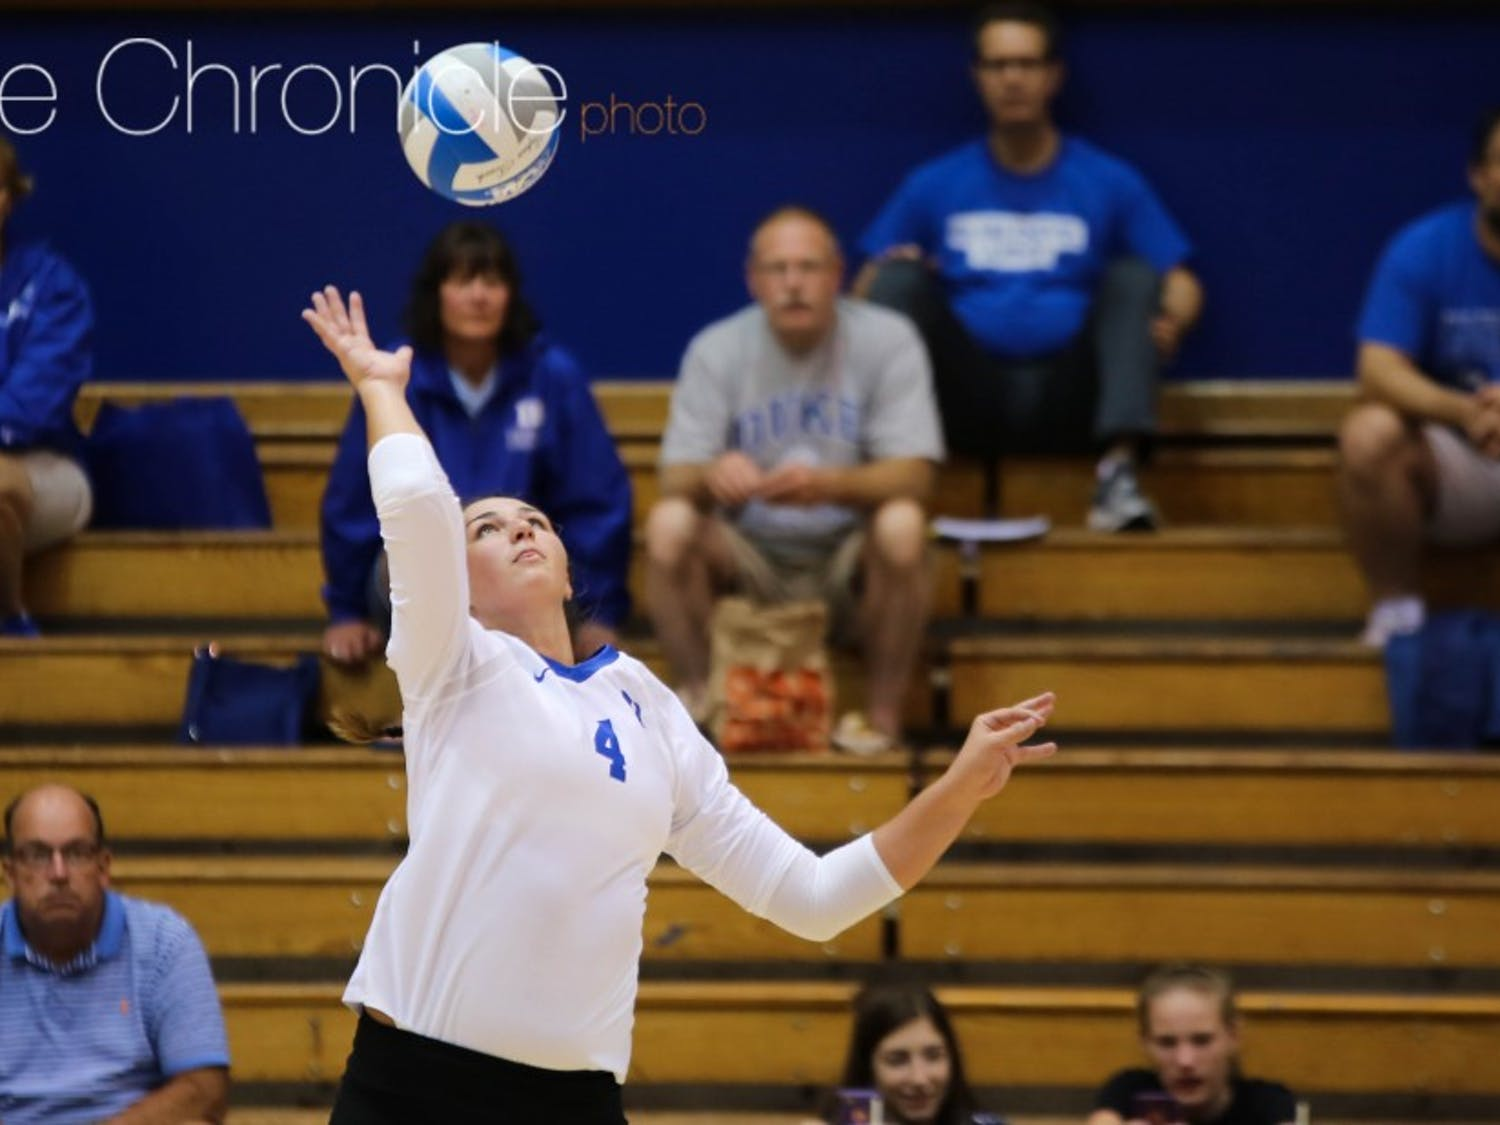 Freshman Jamie Stivers had a career-high 17 kills and 12 digs in Friday's loss at Long Beach State.